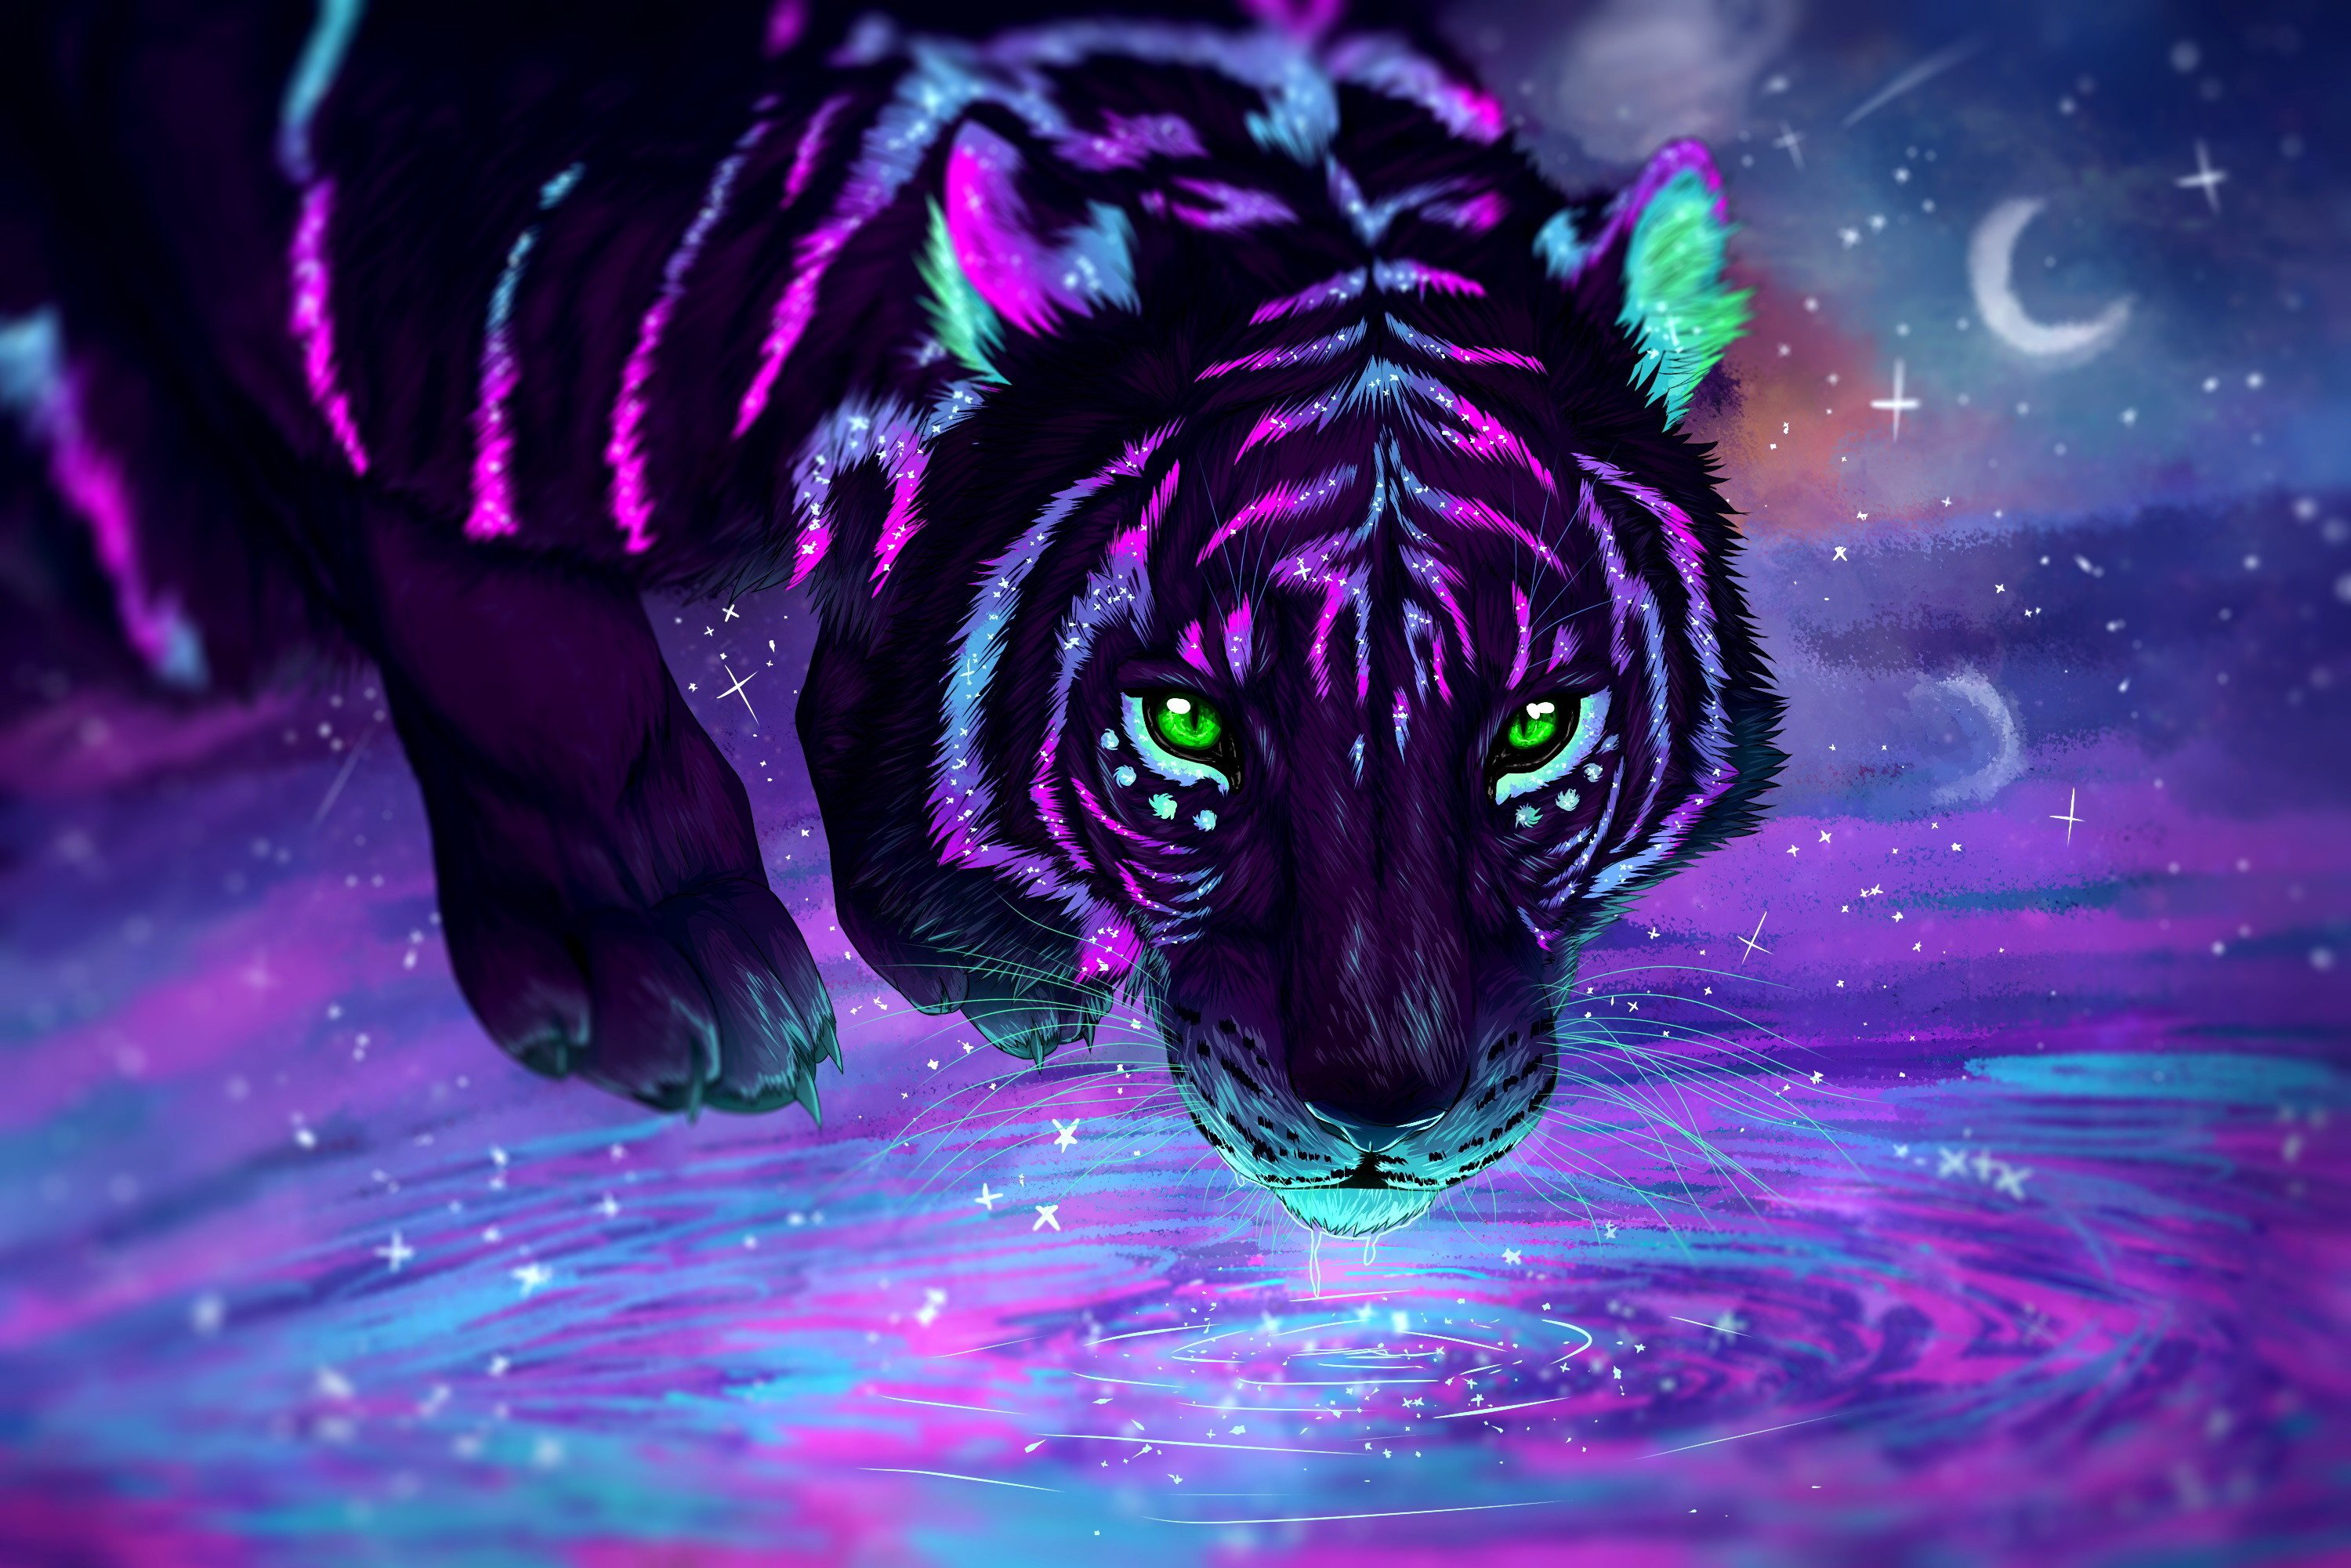 Neon Tiger Wallpapers Top Free Neon Tiger Backgrounds